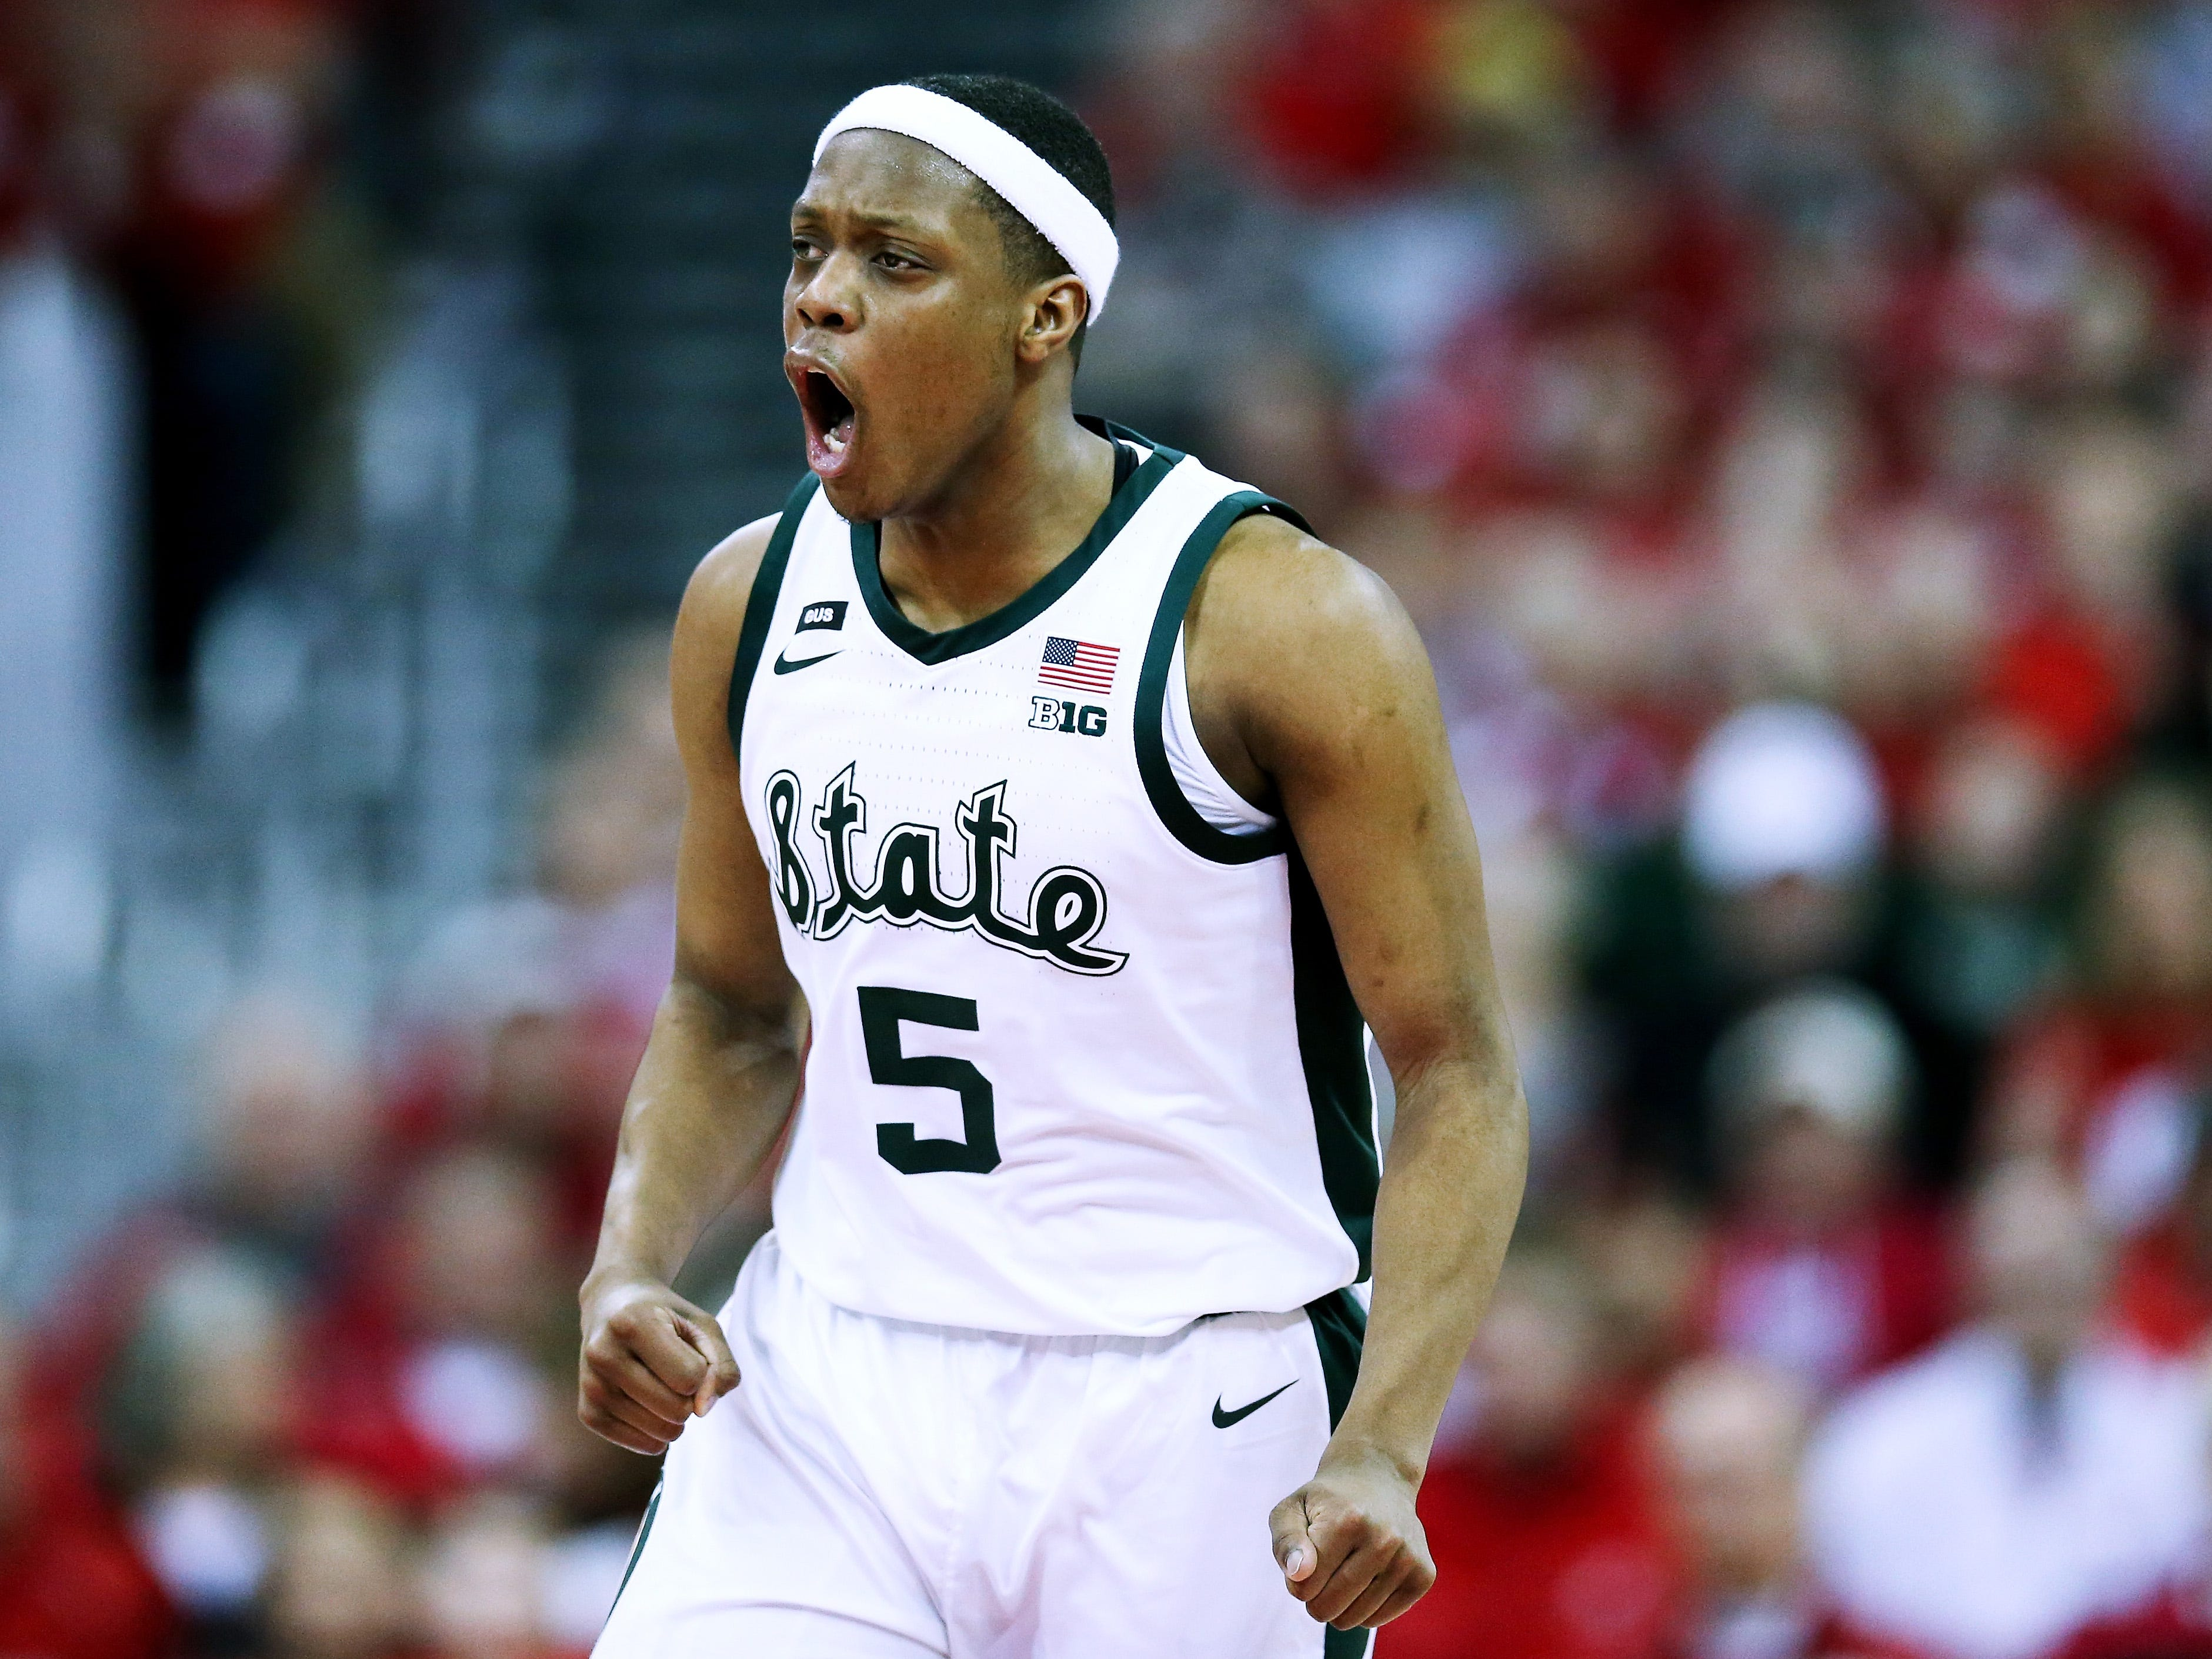 Cassius Winston of the Michigan State Spartans reacts in the first half against the Wisconsin Badgers at the Kohl Center on February 12.